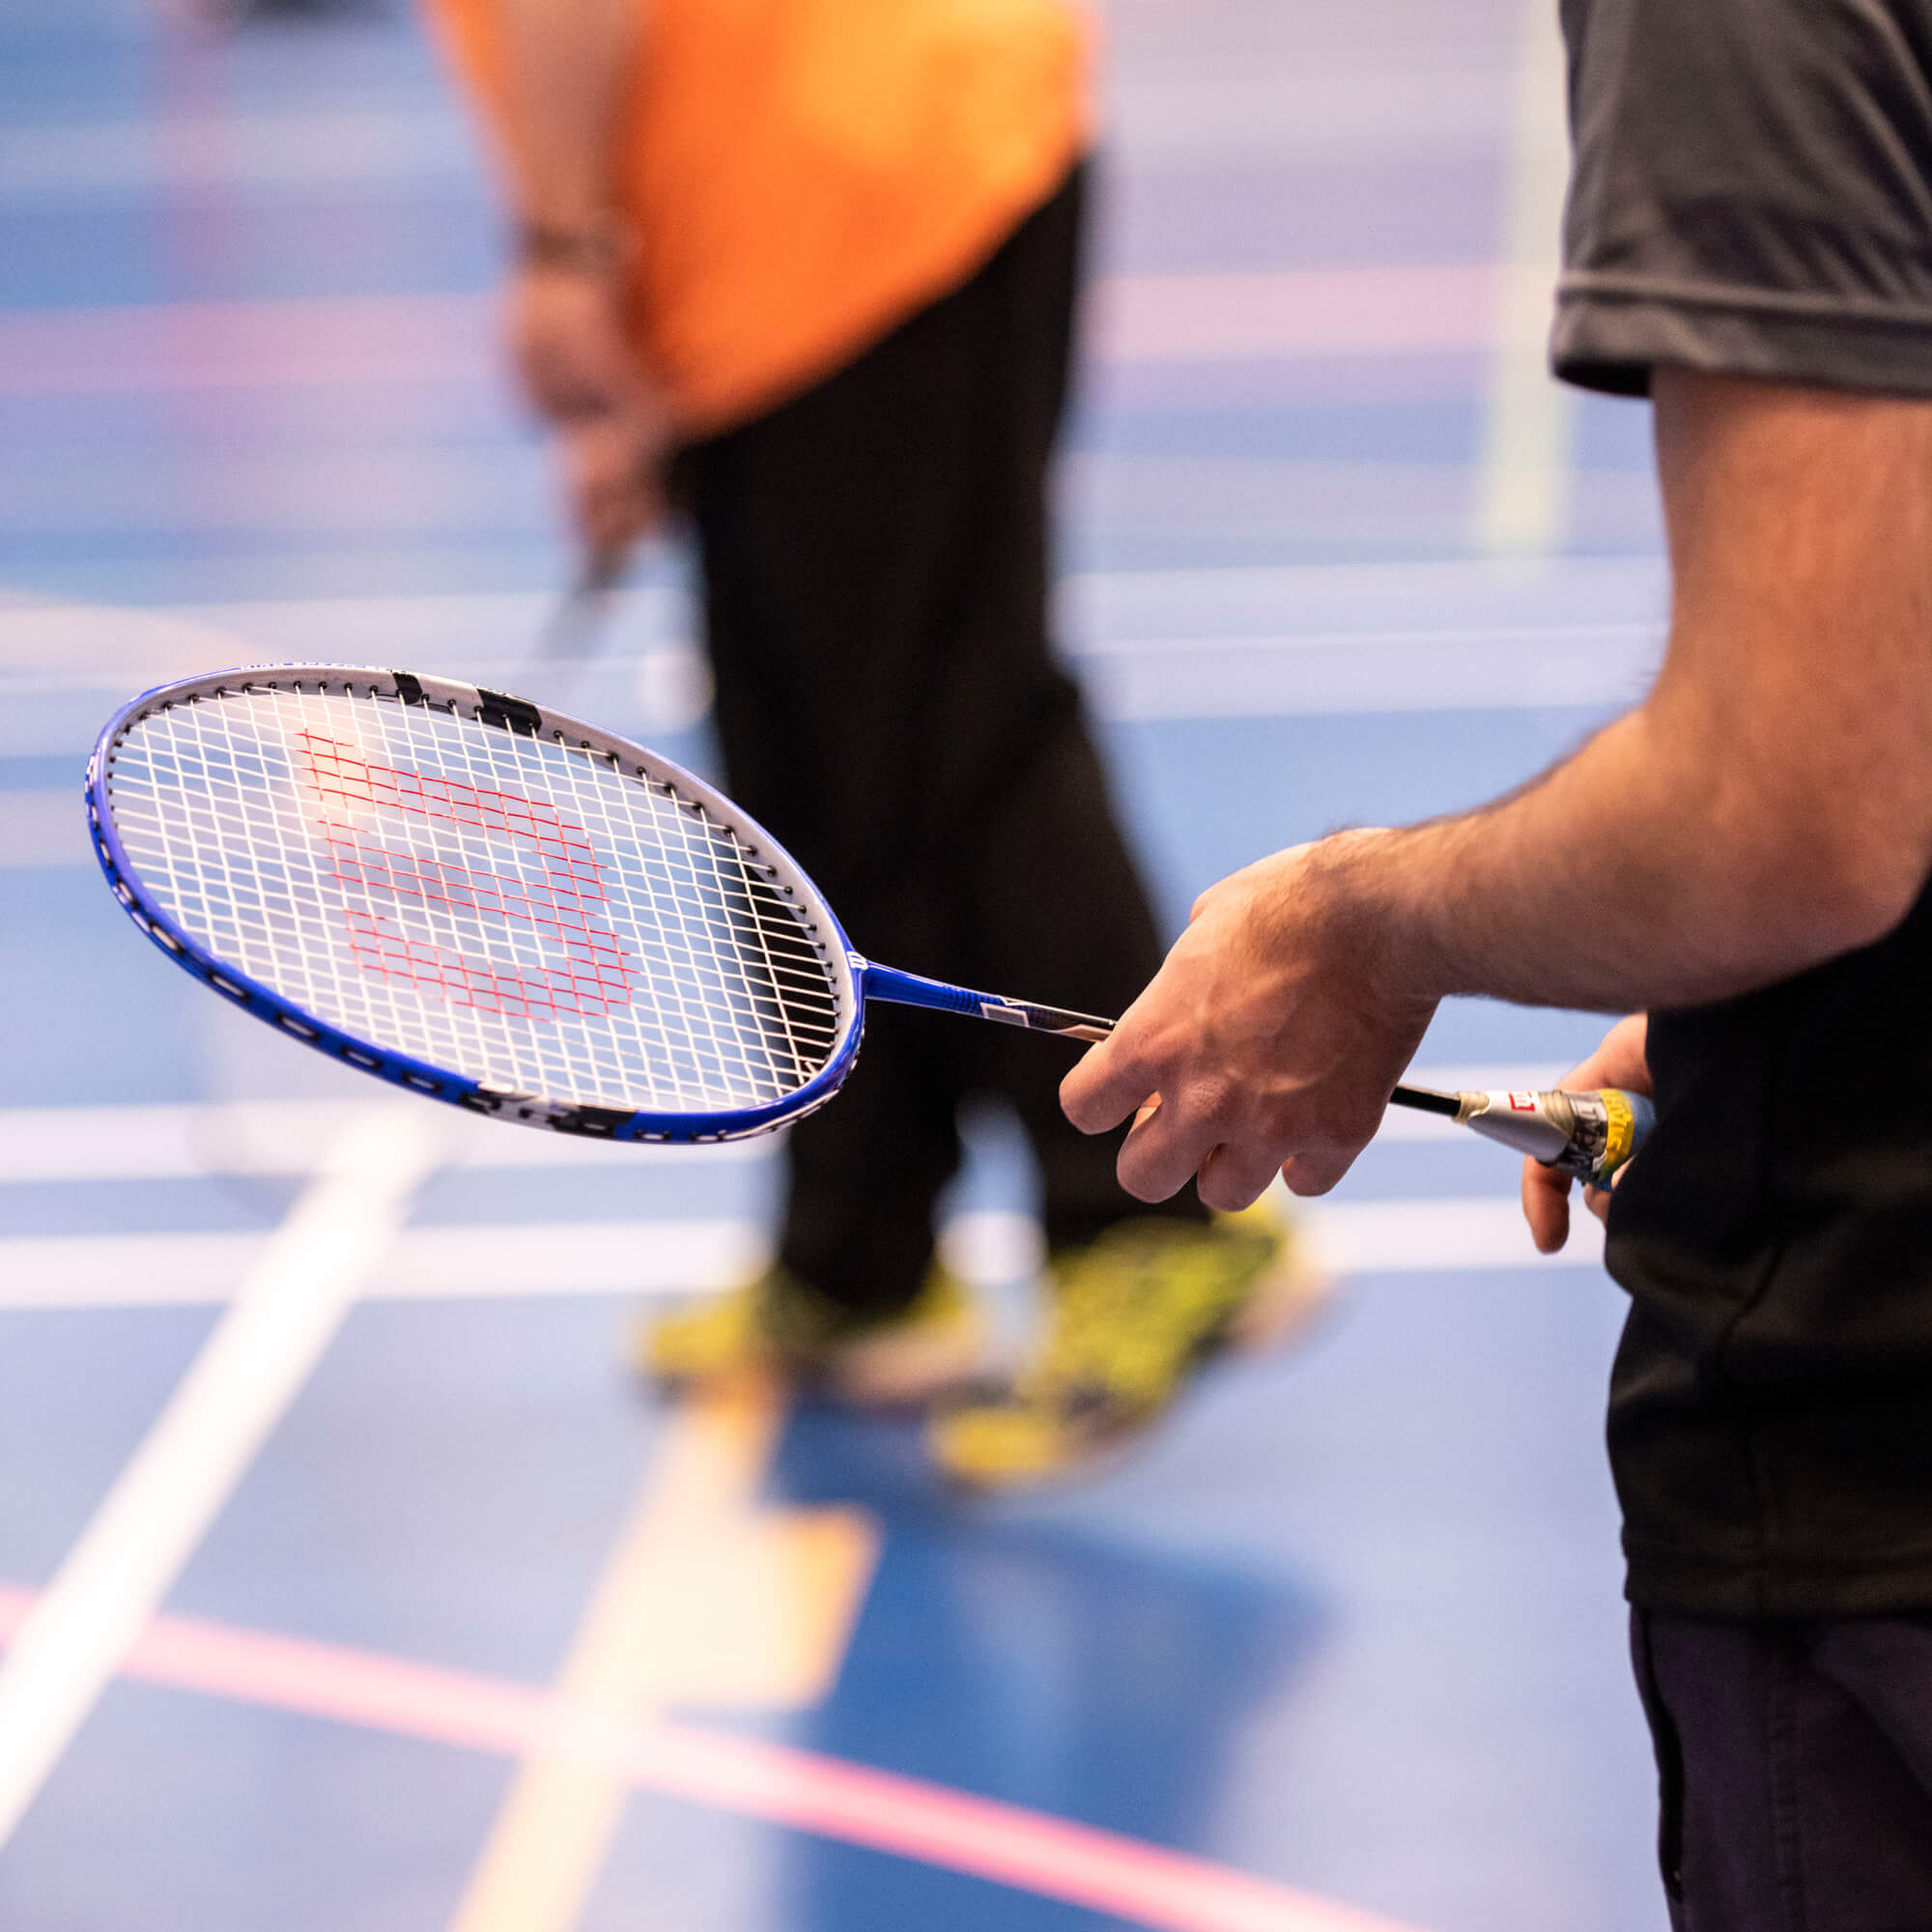 Person's arm holding onto a Badminton racket at social badminton session